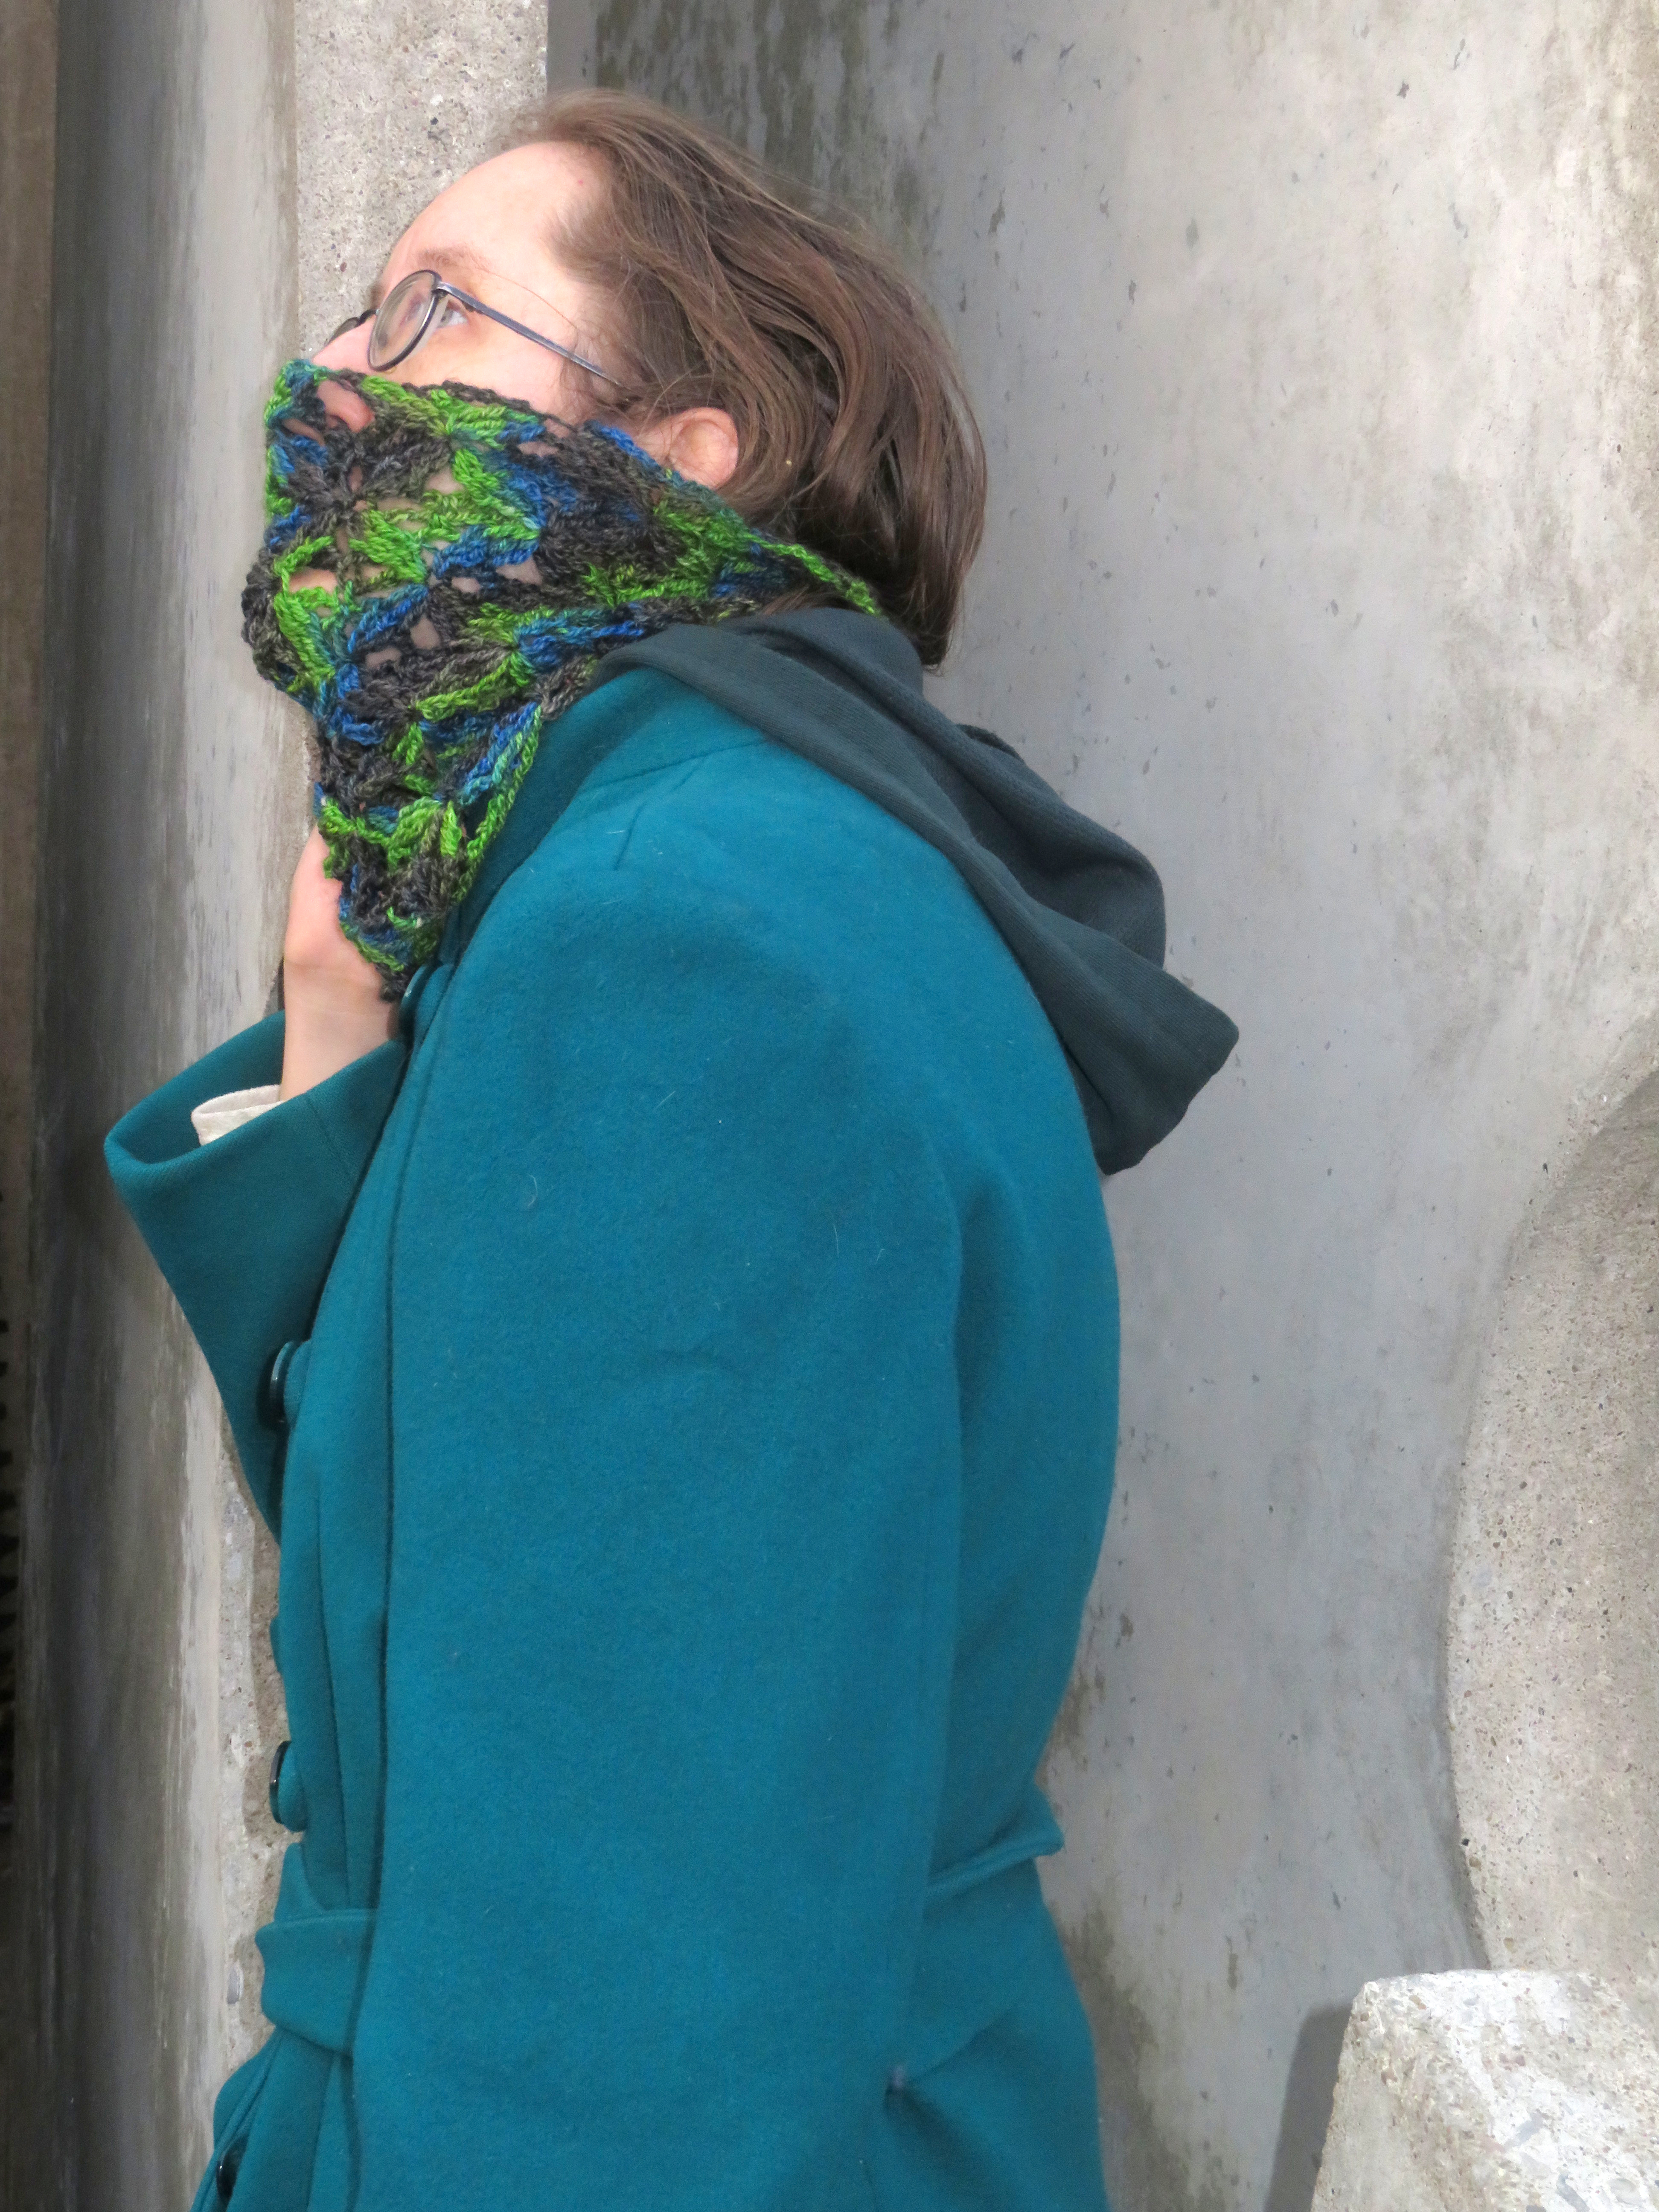 A woman wearing a crochet lace cowl done in a variegated yarn. The cowl is pulled up over her mouth and nose.